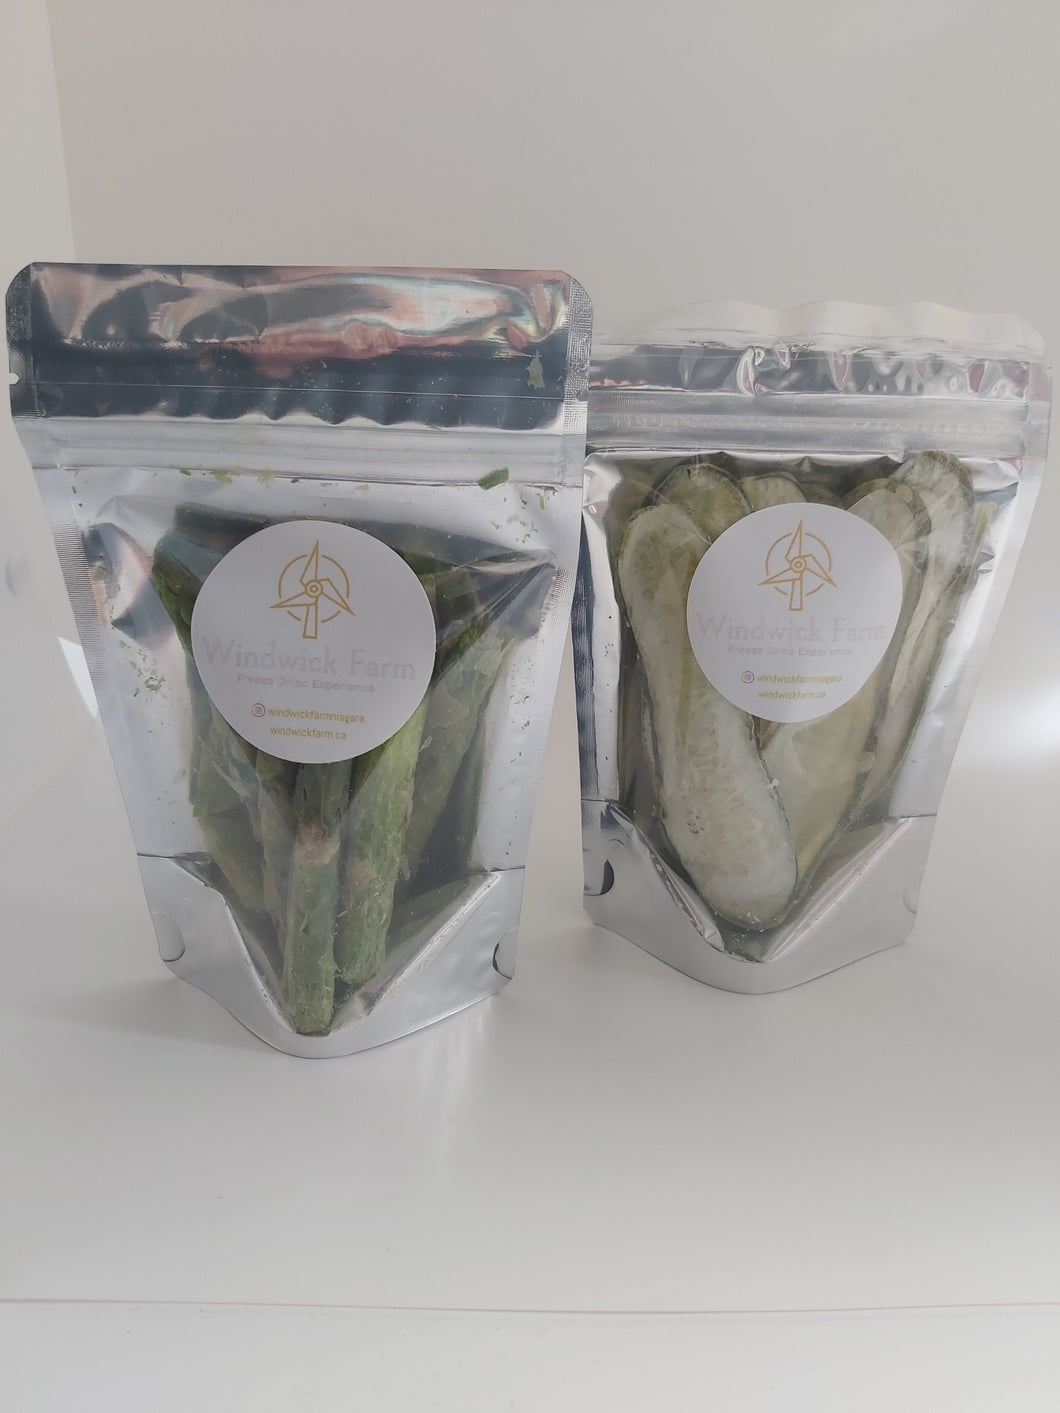 Freeze Dried Veggies - Sampler Size